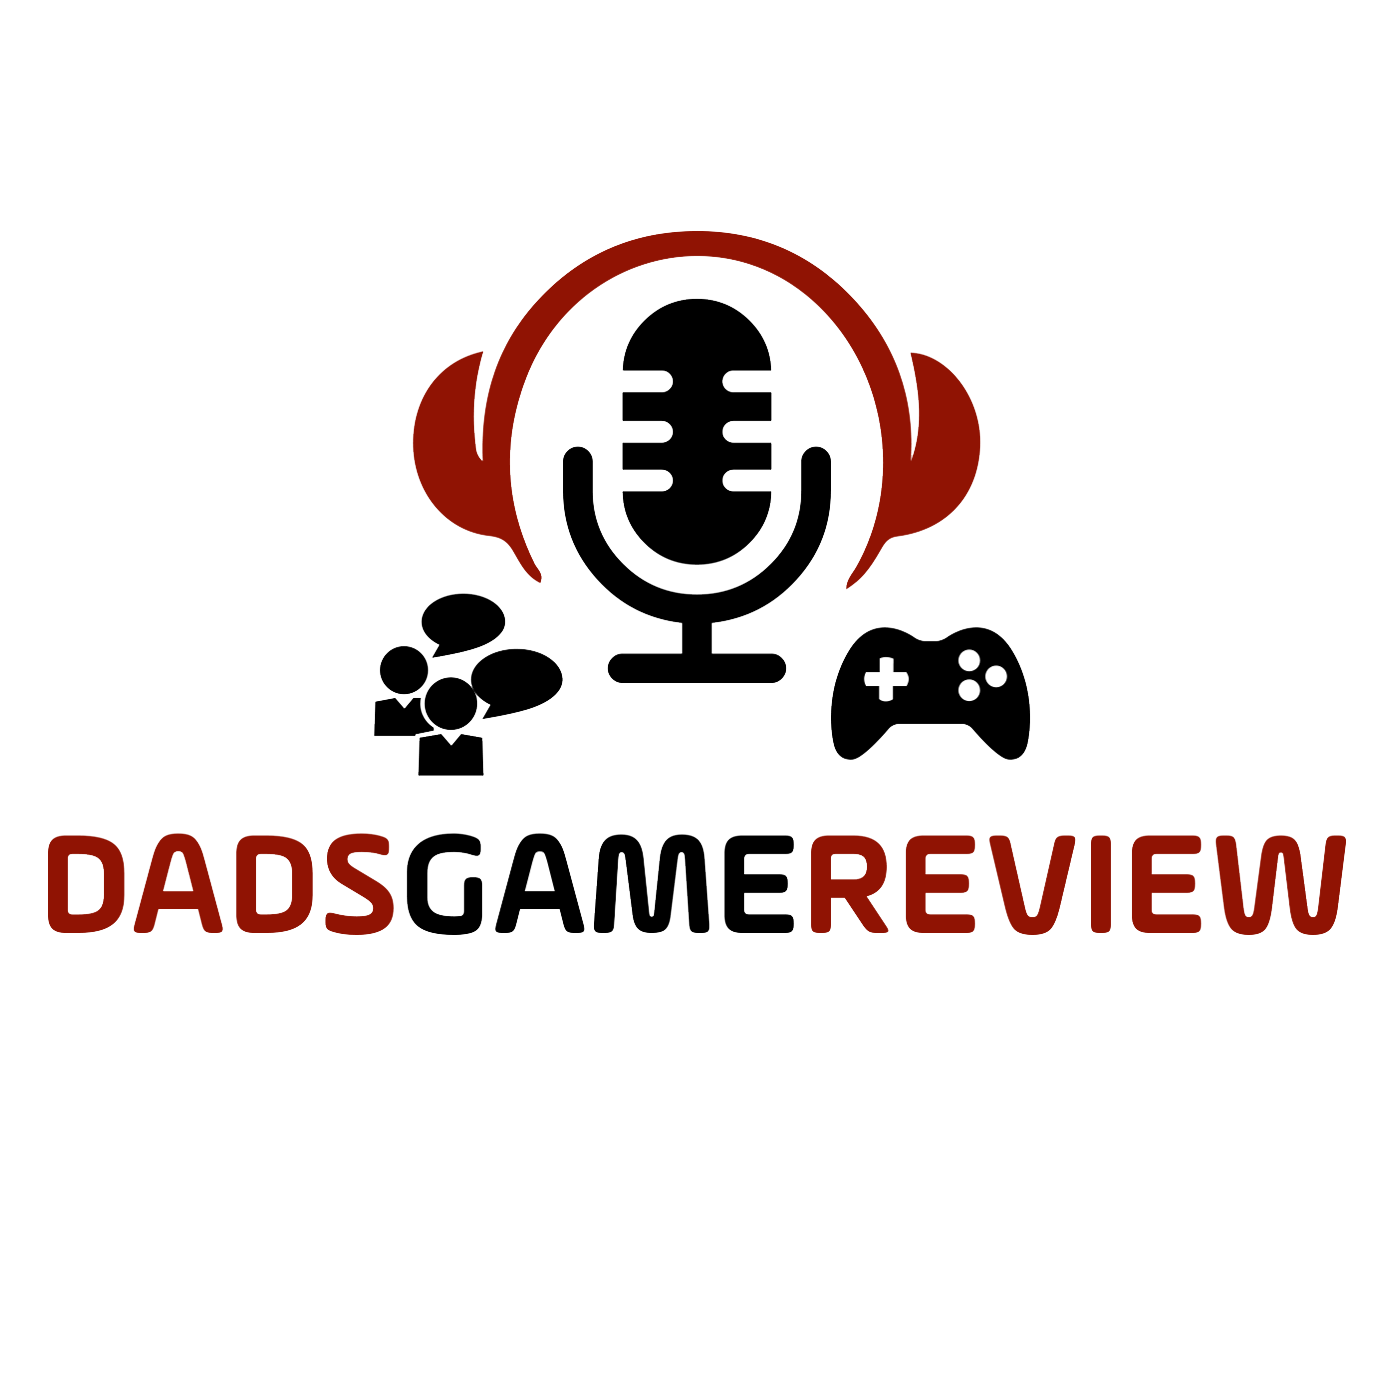 Dad's Game Review